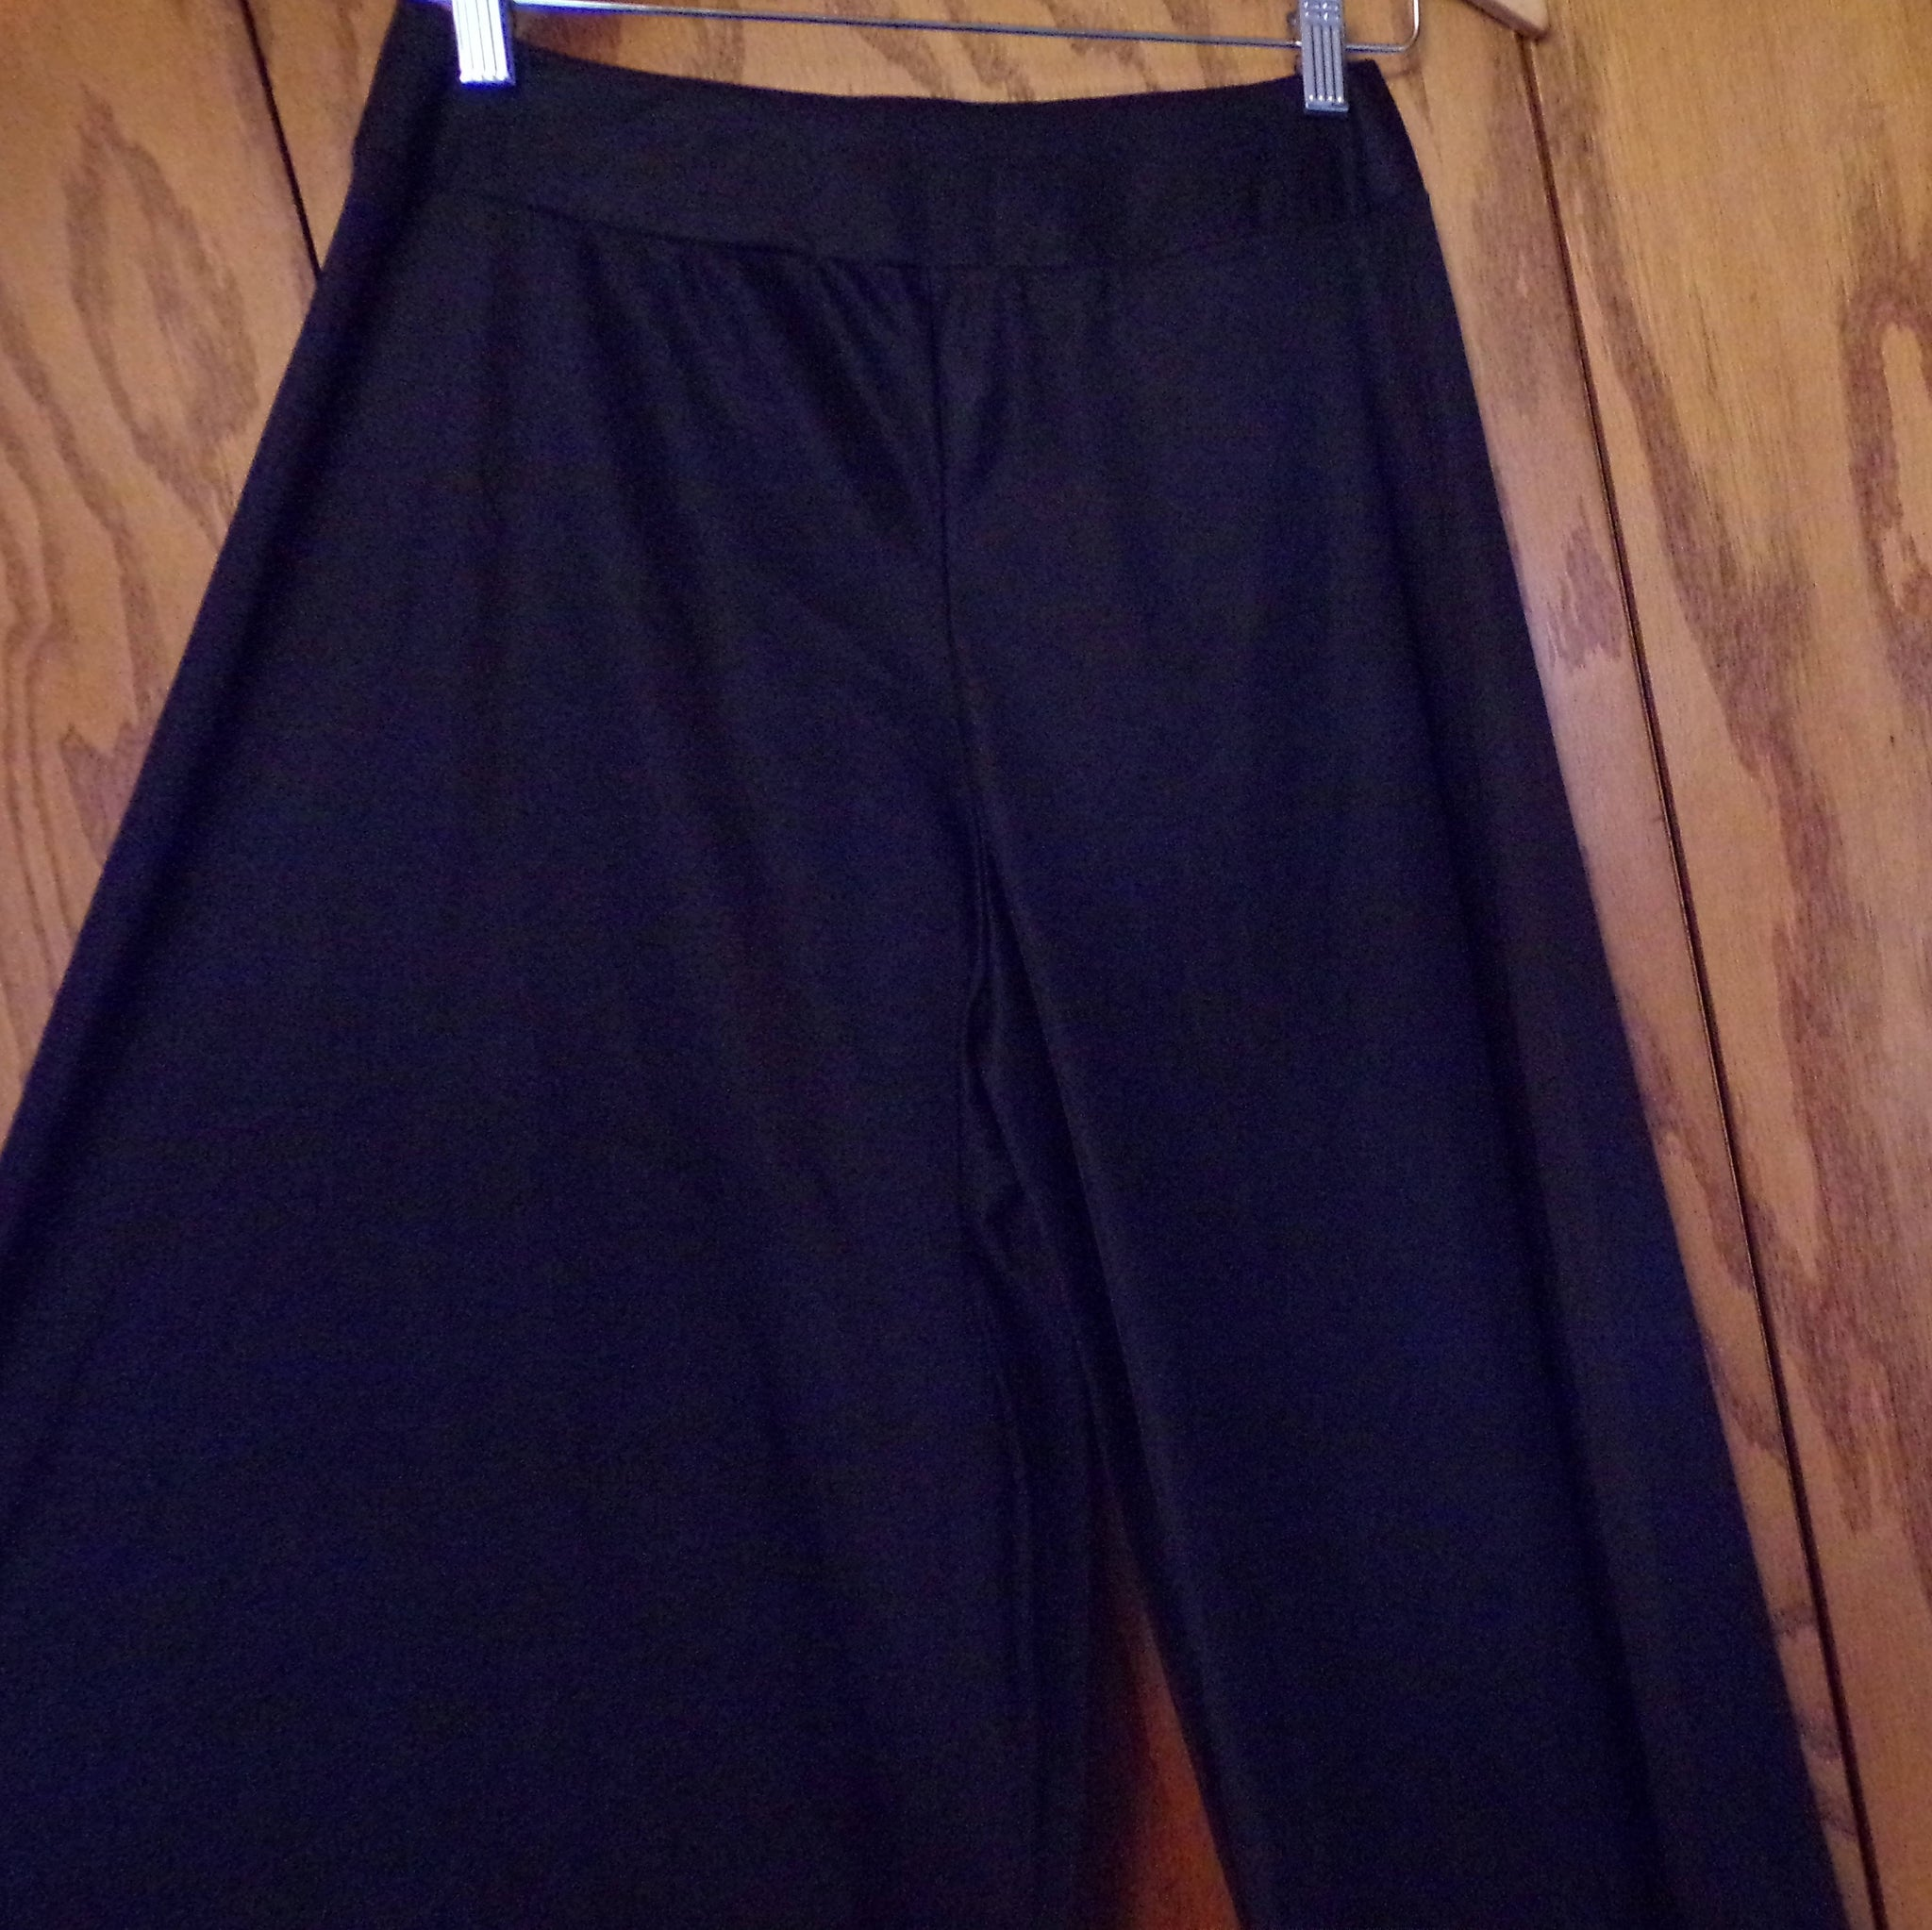 WIDE LEG PANTS lining slip for itchy palazzo black S